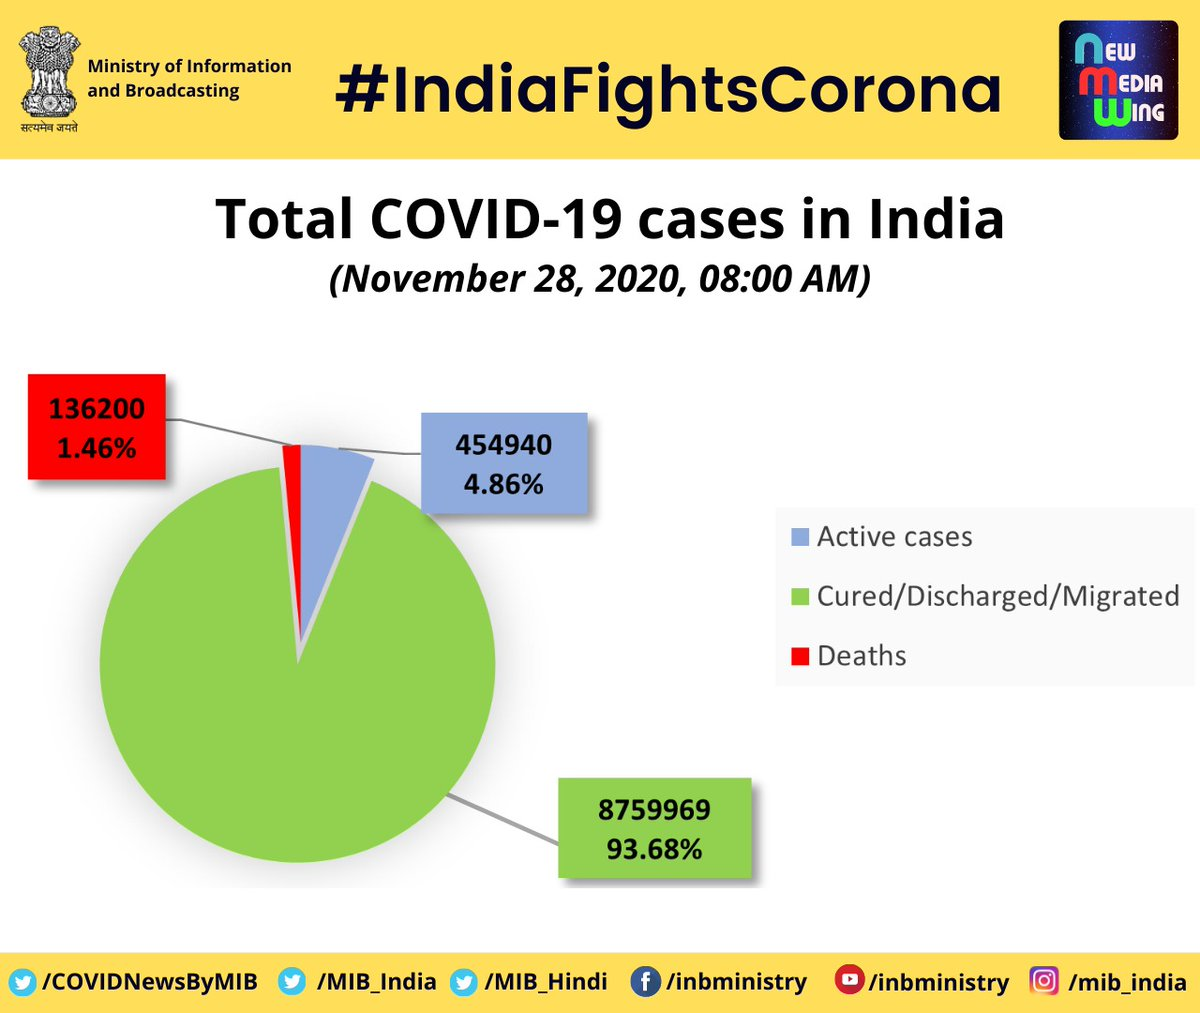 #CoronaVirusUpdates:   📍Total #COVID19 Cases in India (as on November 28, 2020)  ▶️93.68% Cured/Discharged/Migrated (87,59,969) ▶️4.86% Active cases (4,54,940) ▶️1.46% Deaths (1,36,200)  Total COVID-19 confirmed cases = Cured/Discharged/Migrated+Active cases+Deaths